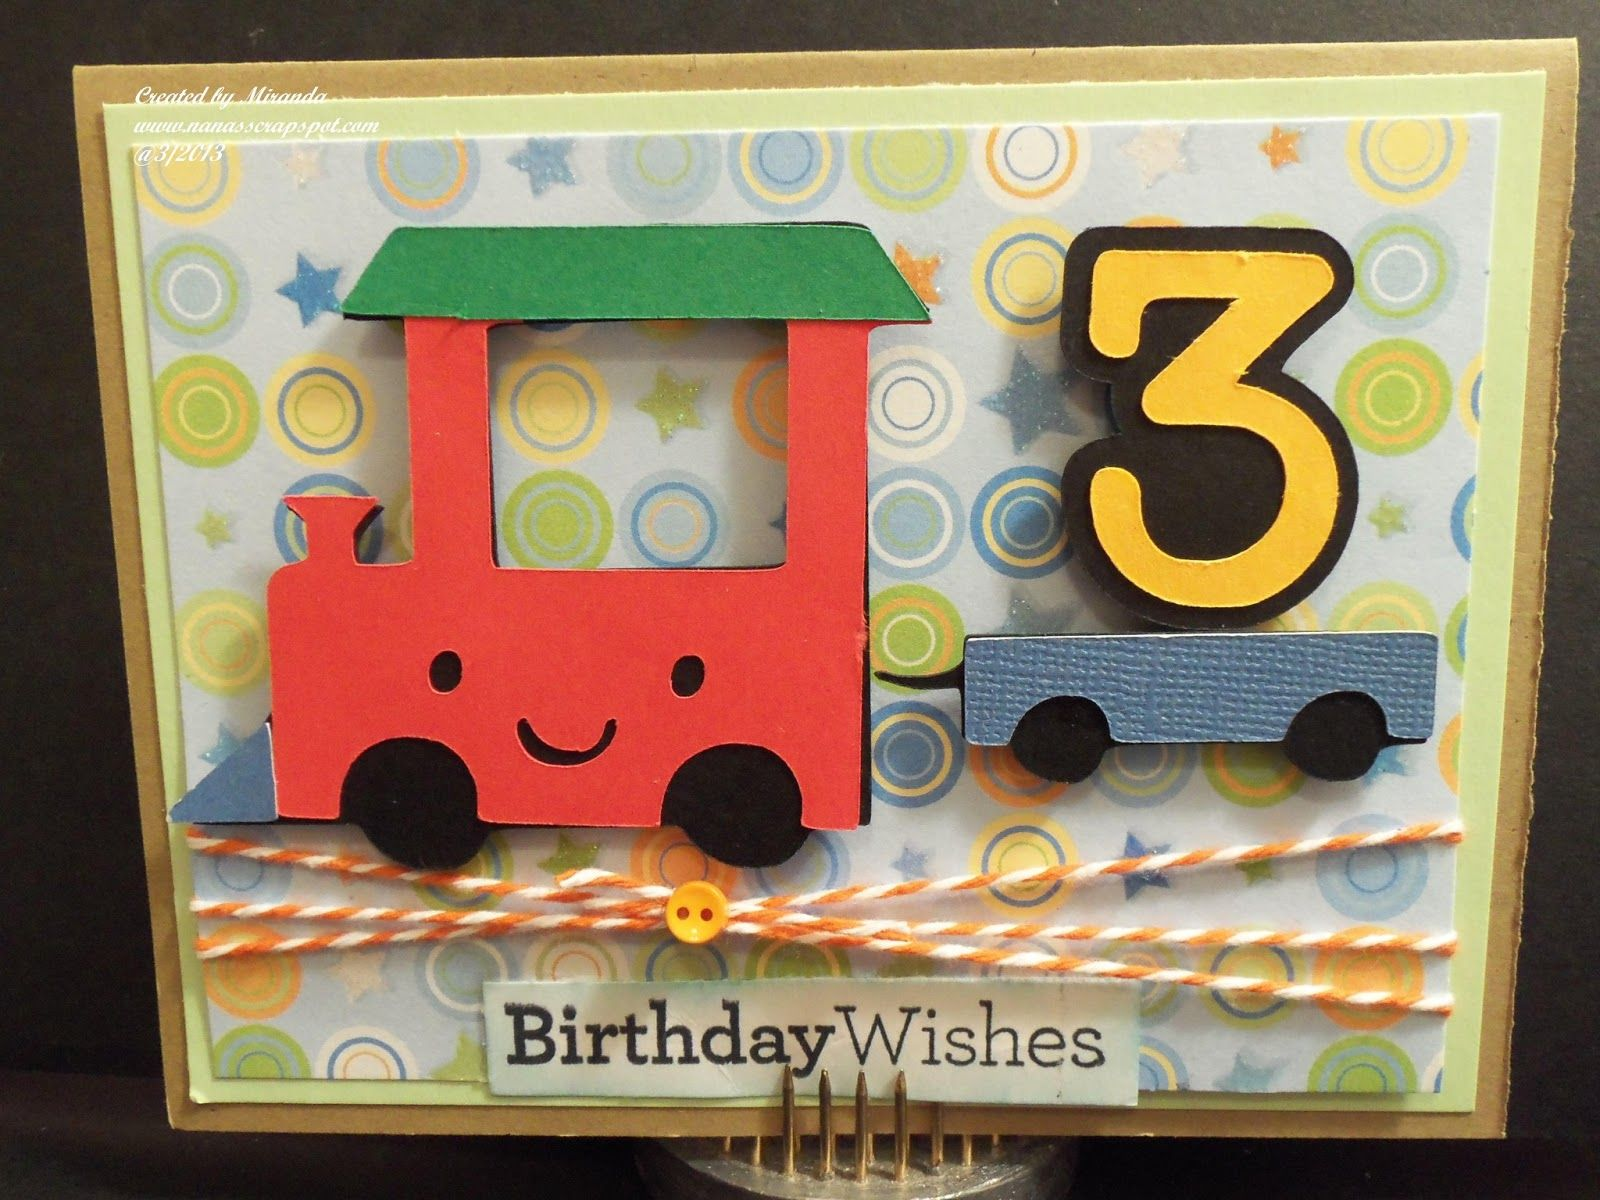 Handmade card from nanas scrap spot little prince blog hop birthday wishes for a 3 year old kristyandbryce Choice Image